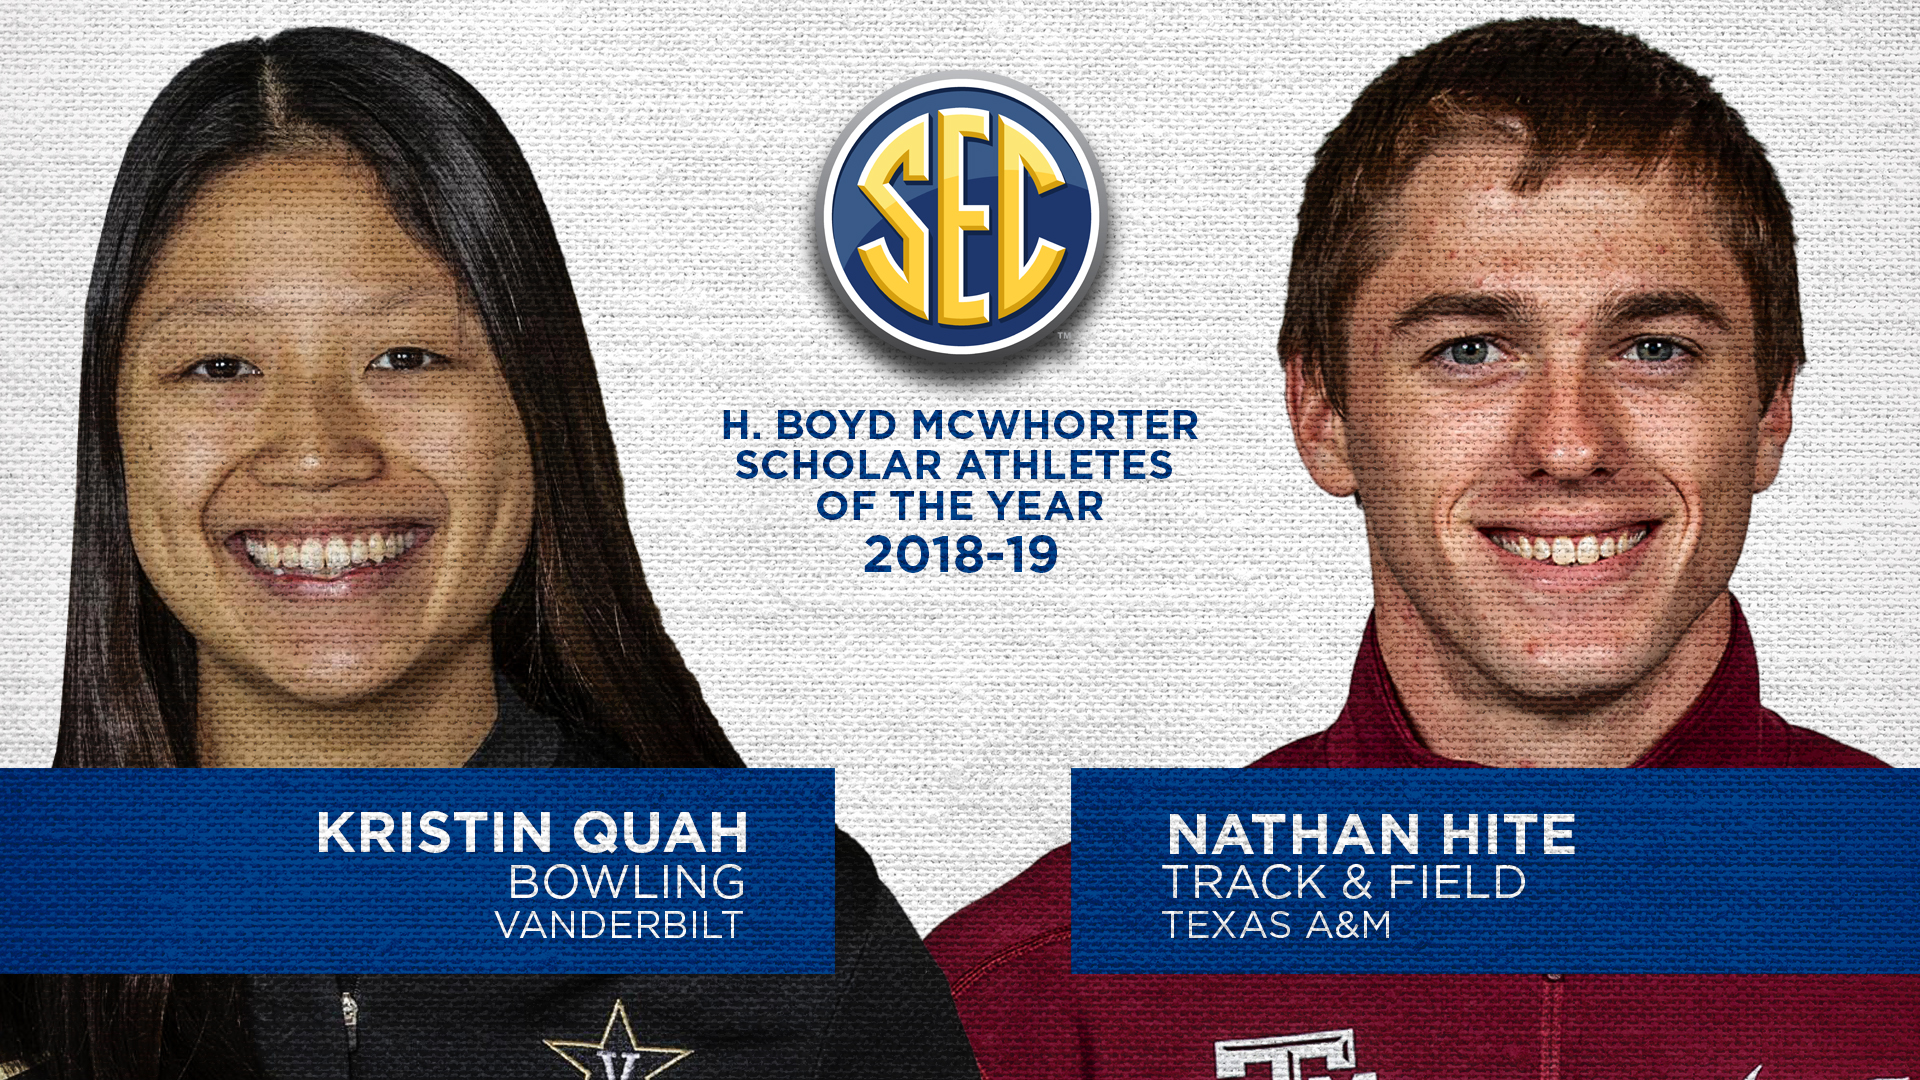 Vanderbilt's Kristin Quah and Texas A&M's Nathan Hite are the 2018-19 SEC H. Boyd McWhorter Scholar-Athletes of the Year